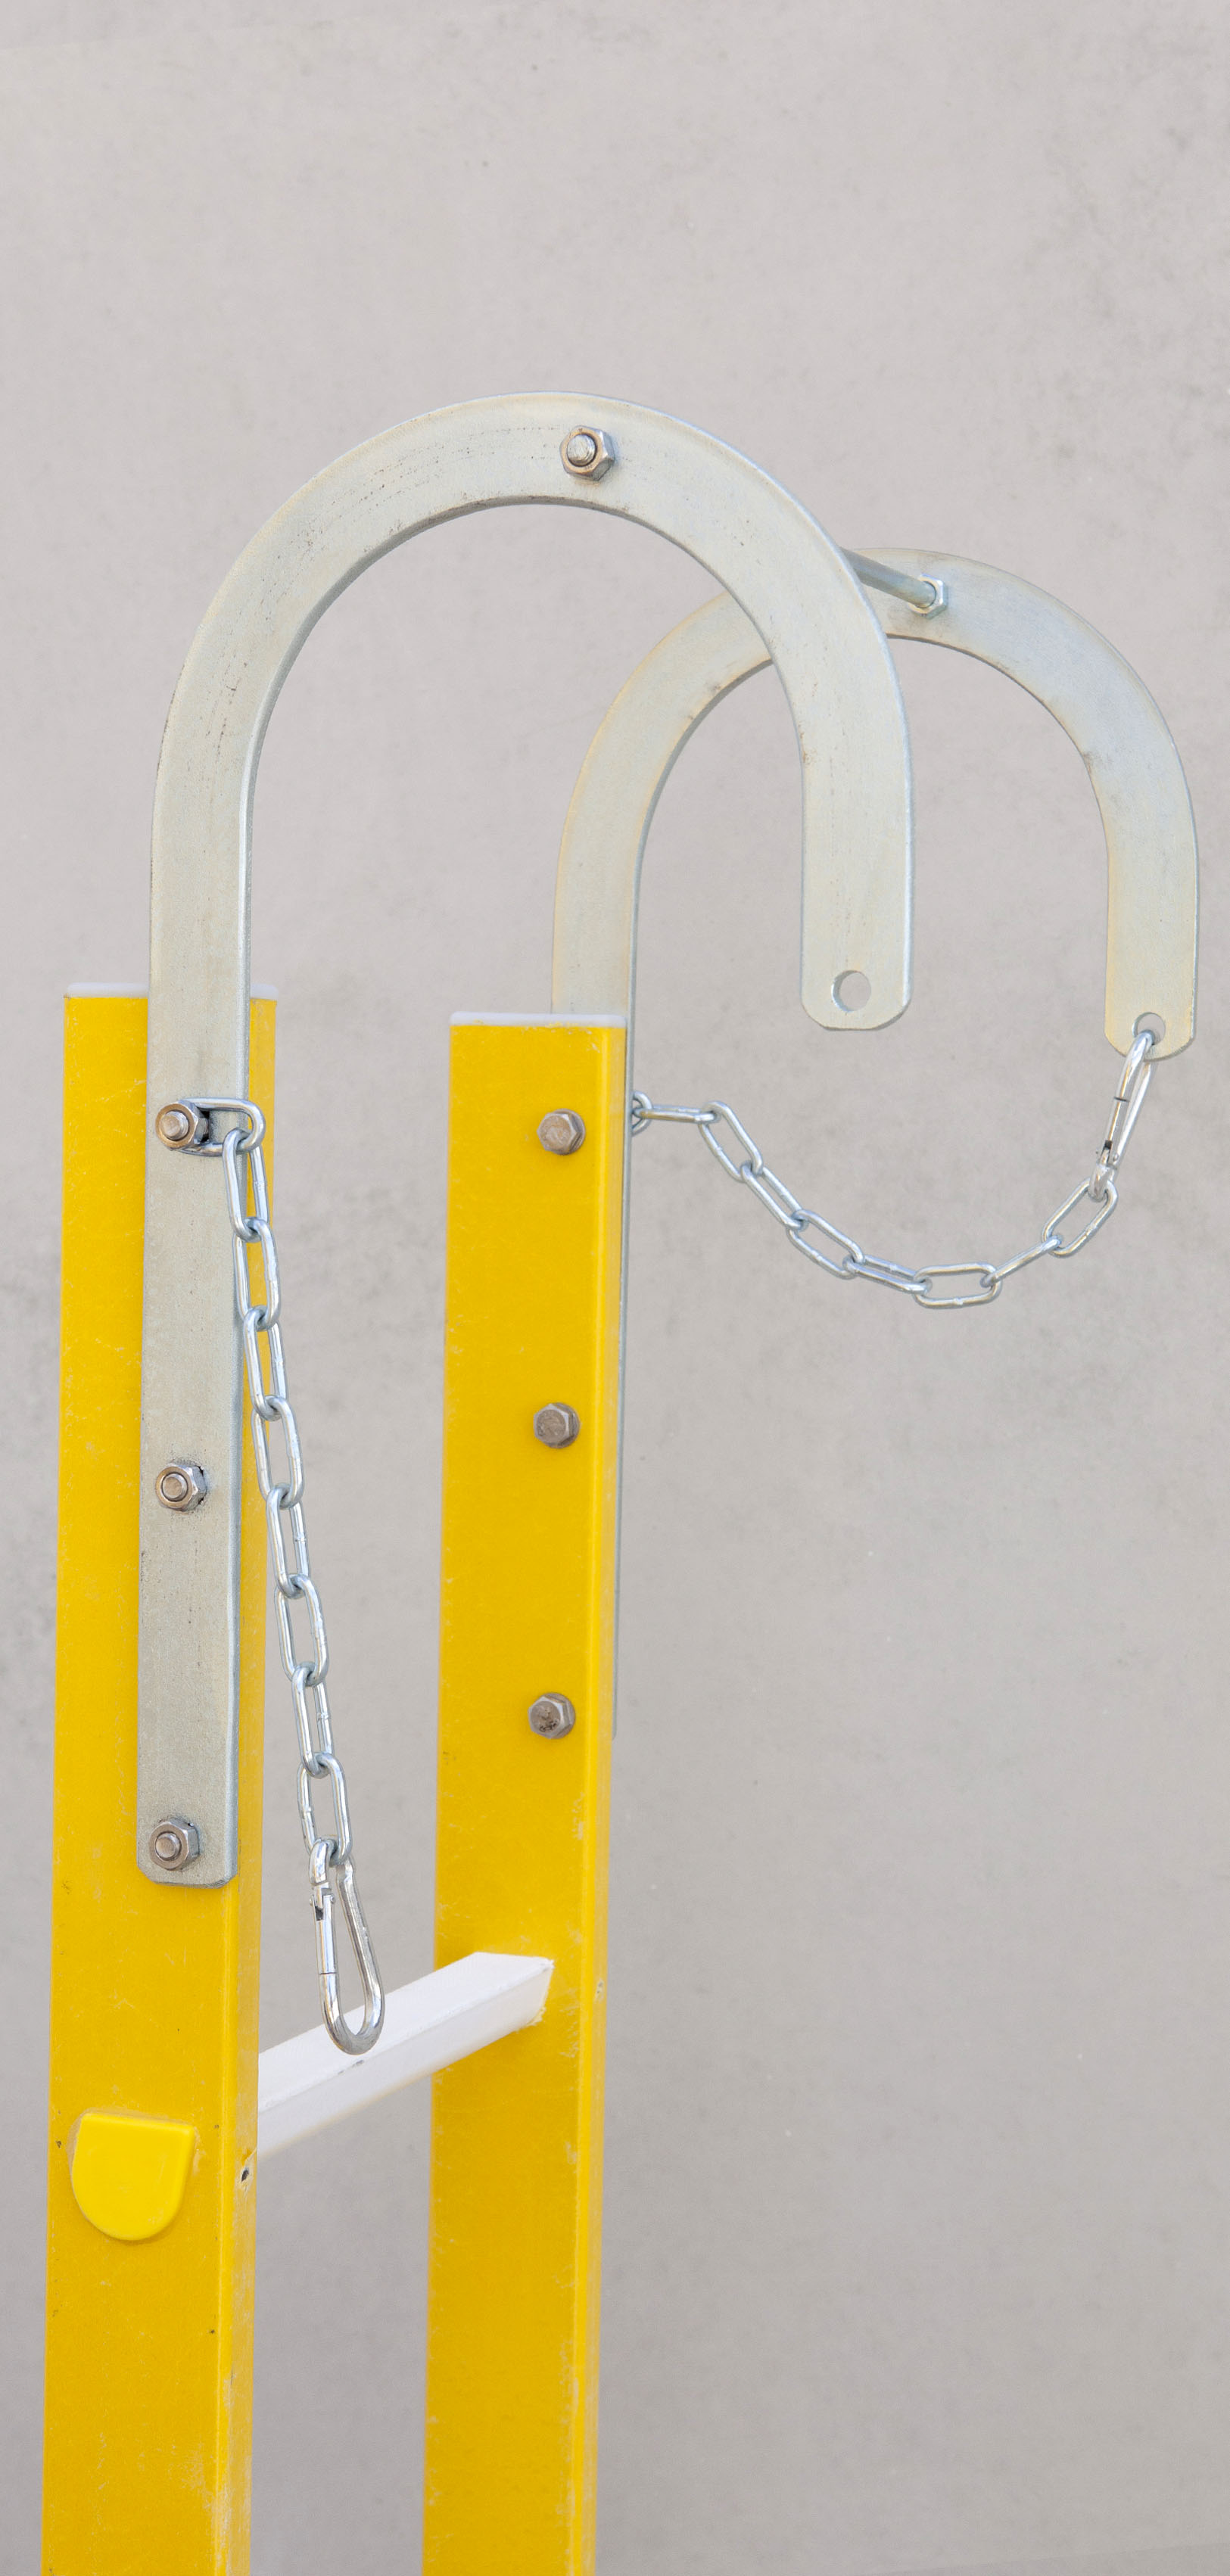 Hooks, Chains And Eyebolts